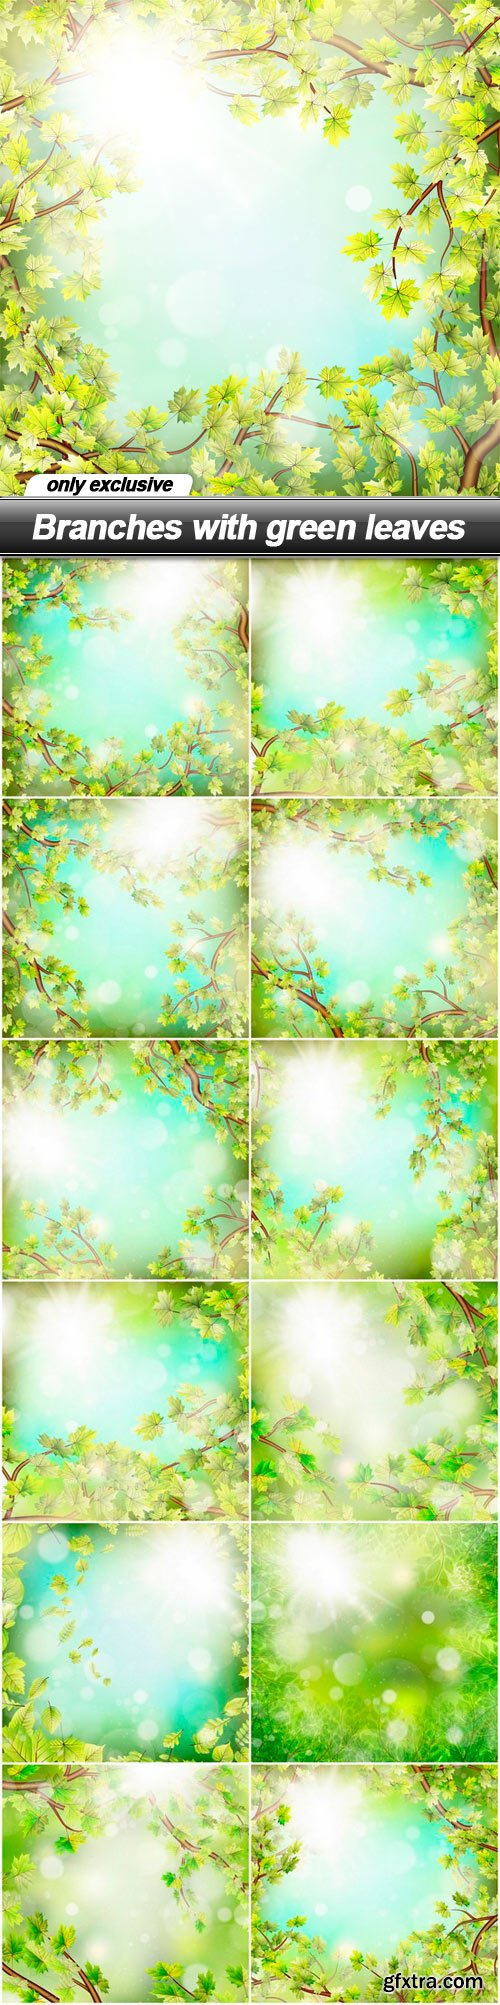 Branches with green leaves - 13 EPS